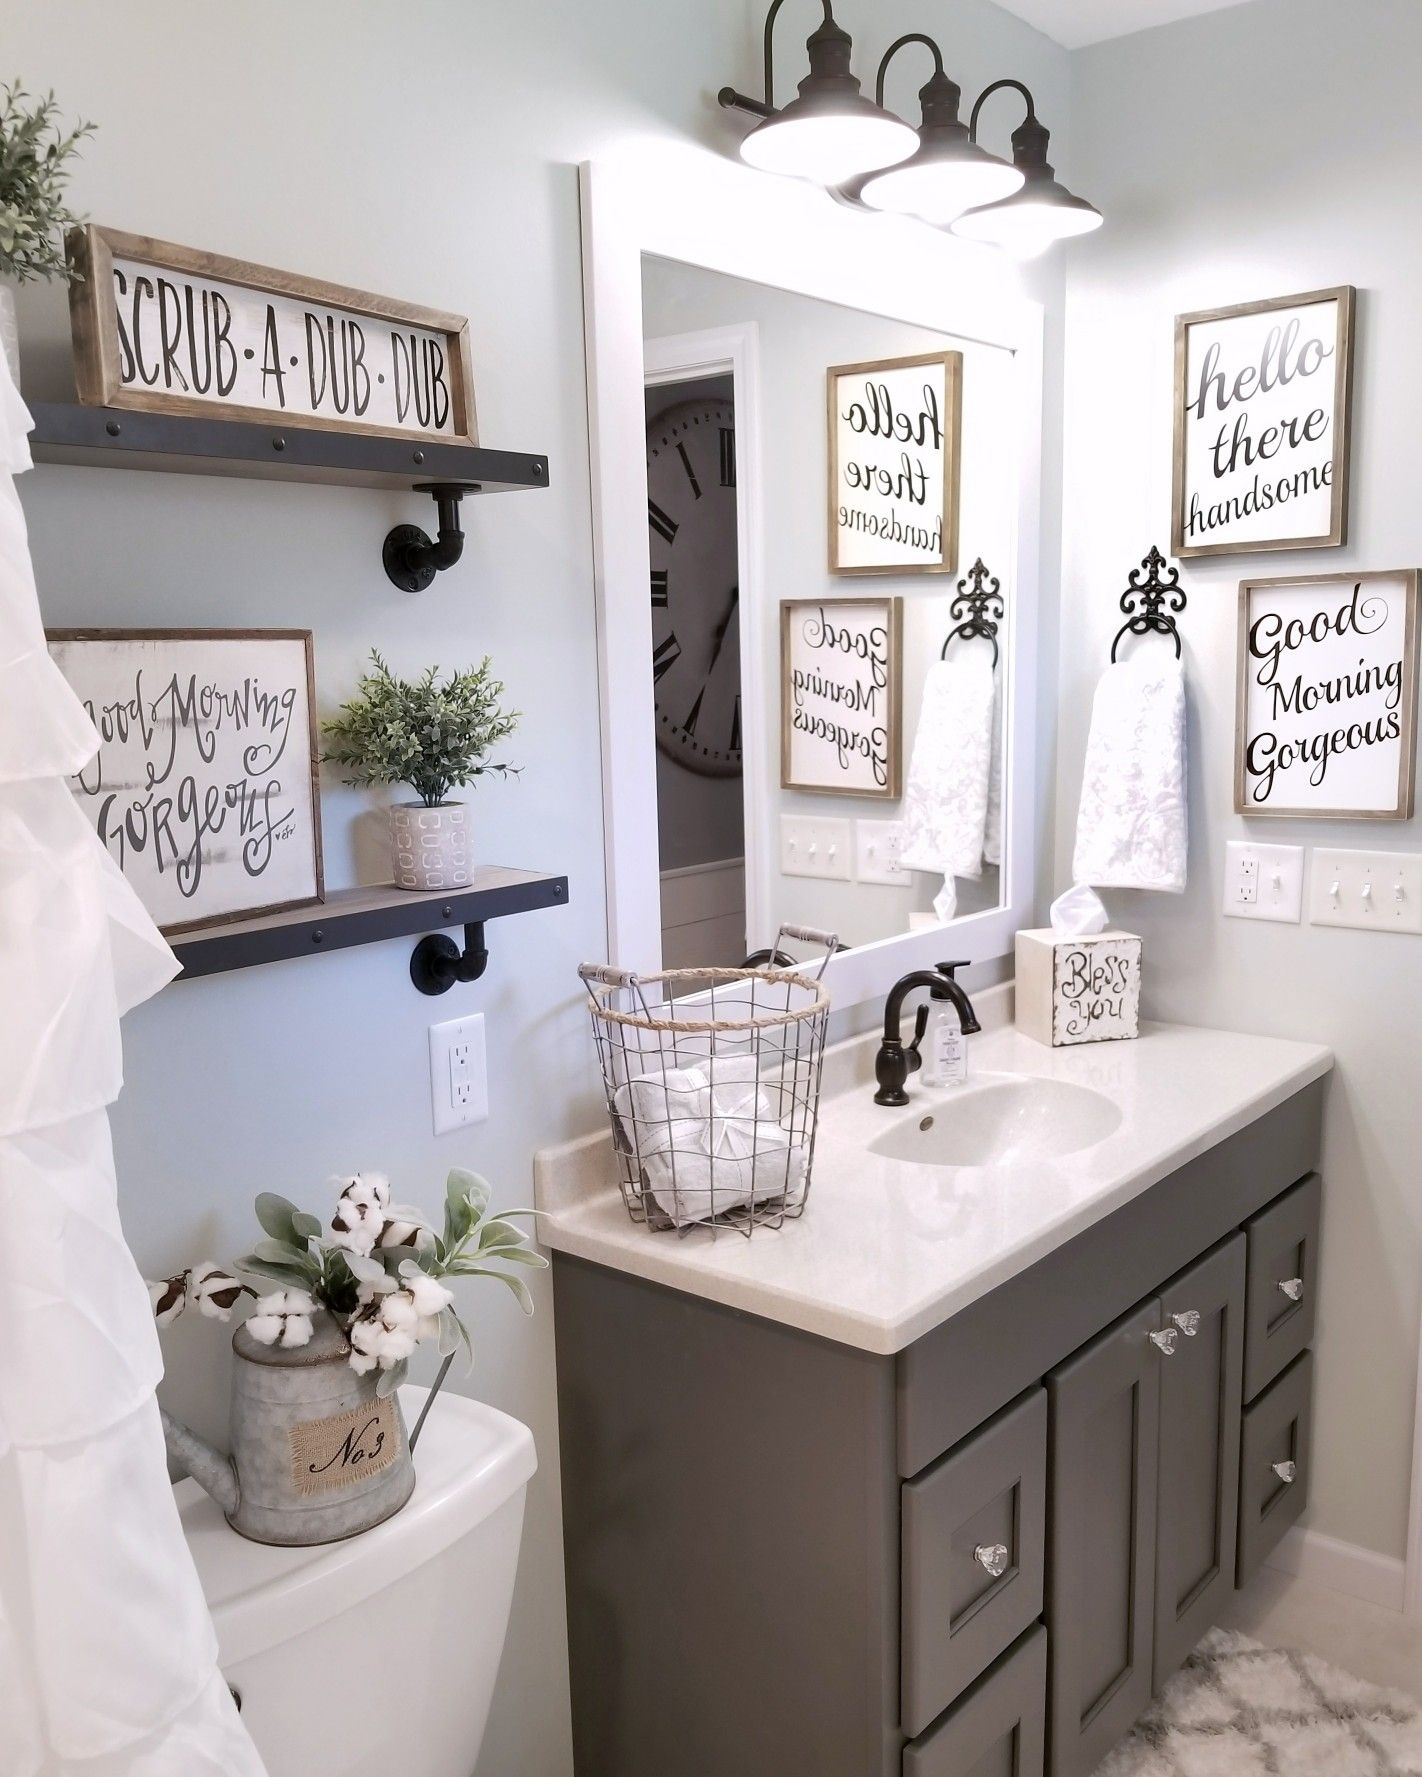 Bathroom Decorating Ideas: Farmhouse Bathroom By @blessed_ranch Farmhouse Decor